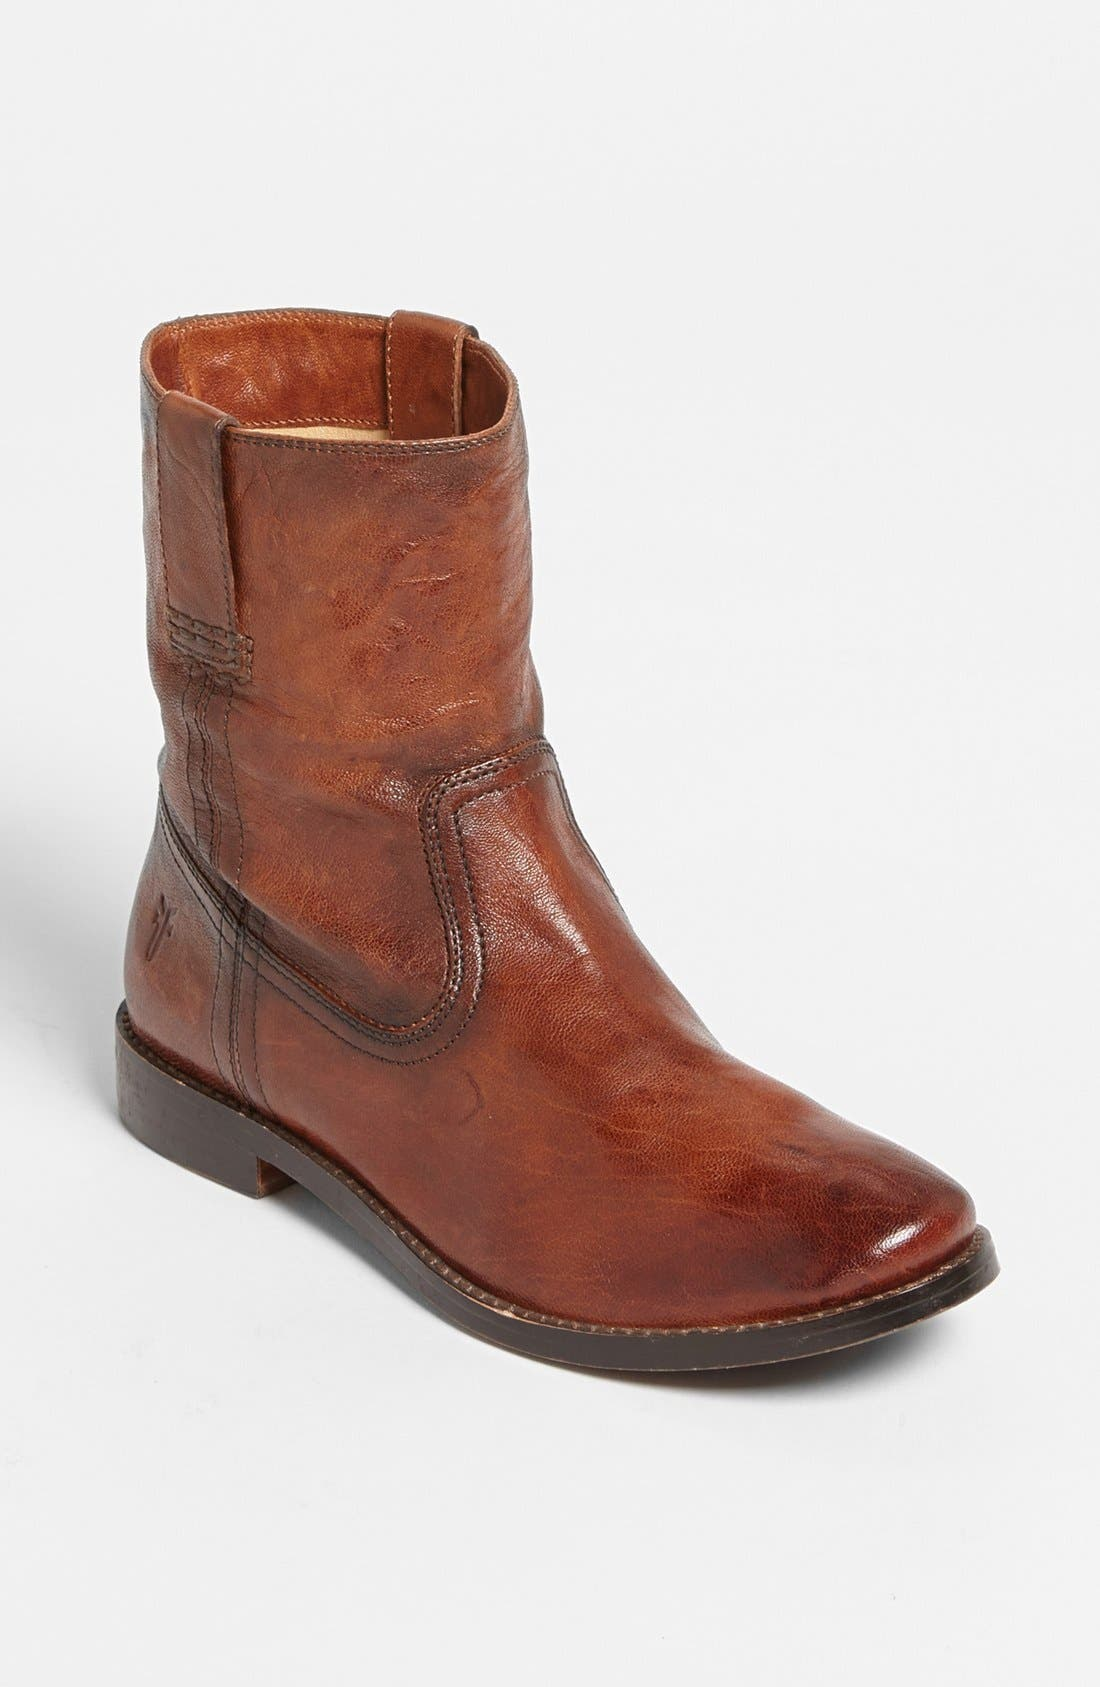 Main Image - Frye 'Anna - Shortie' Leather Boot (Women)